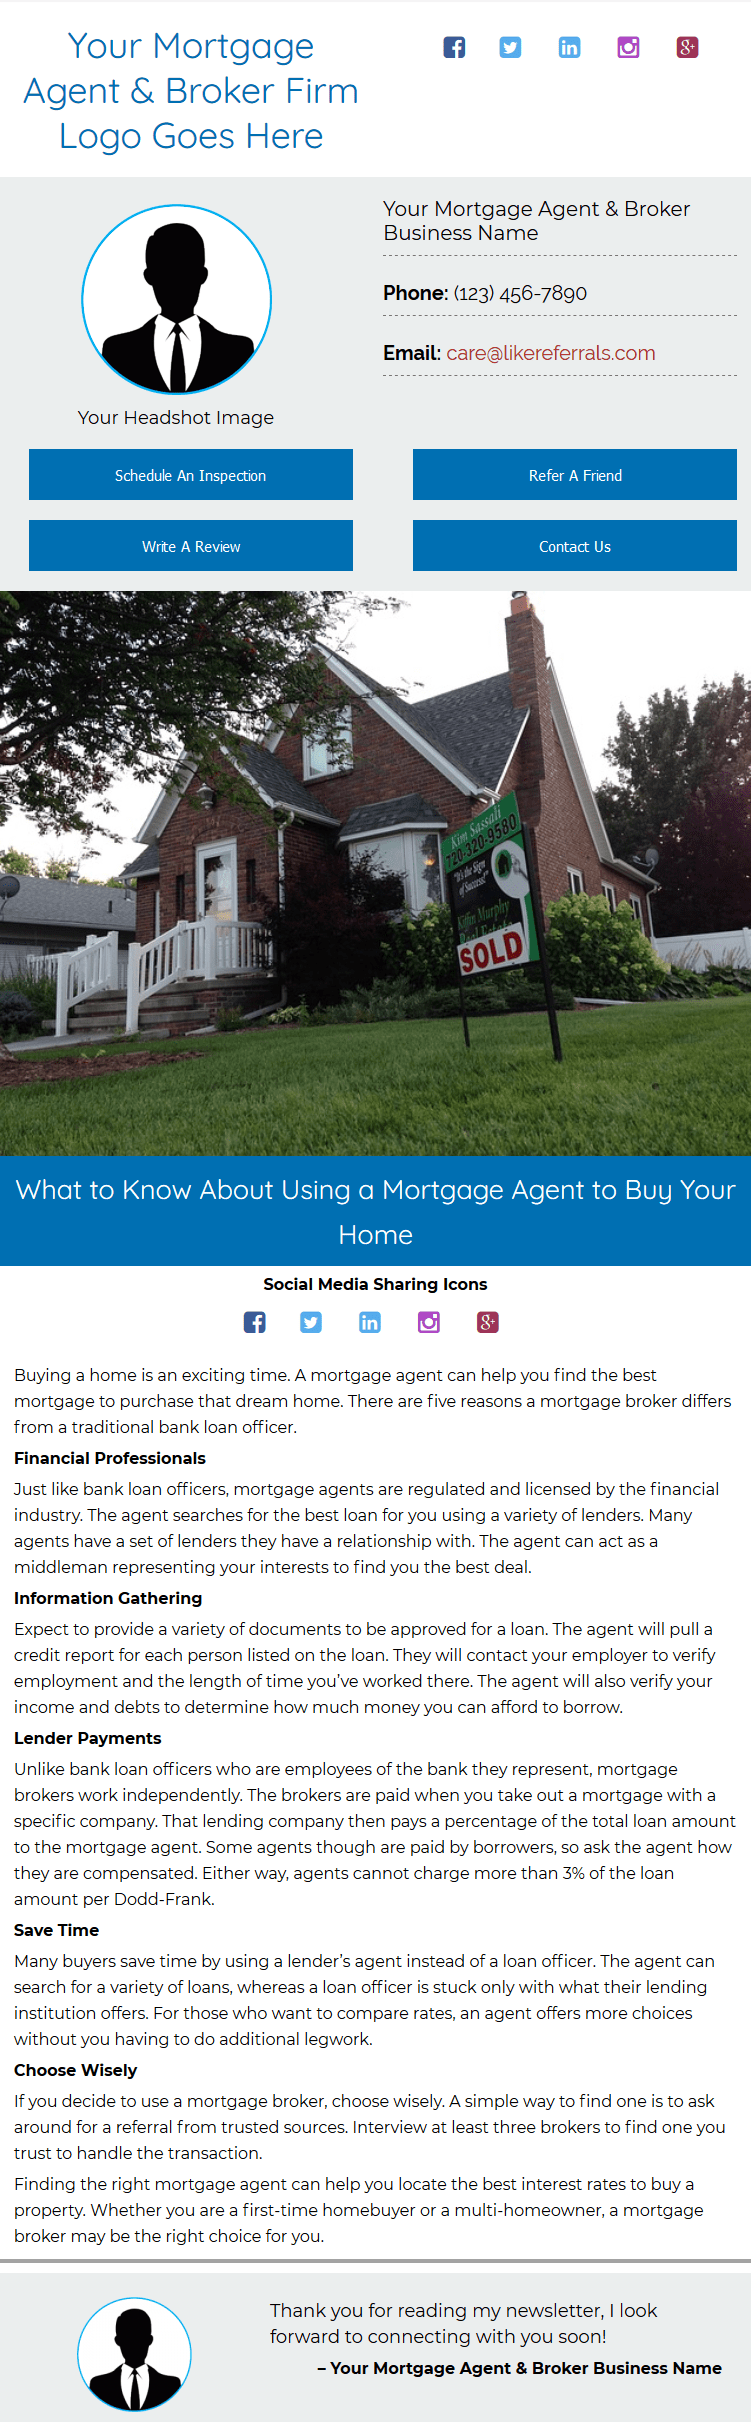 Email Newsletter Marketing Services For Mortgage & Agent